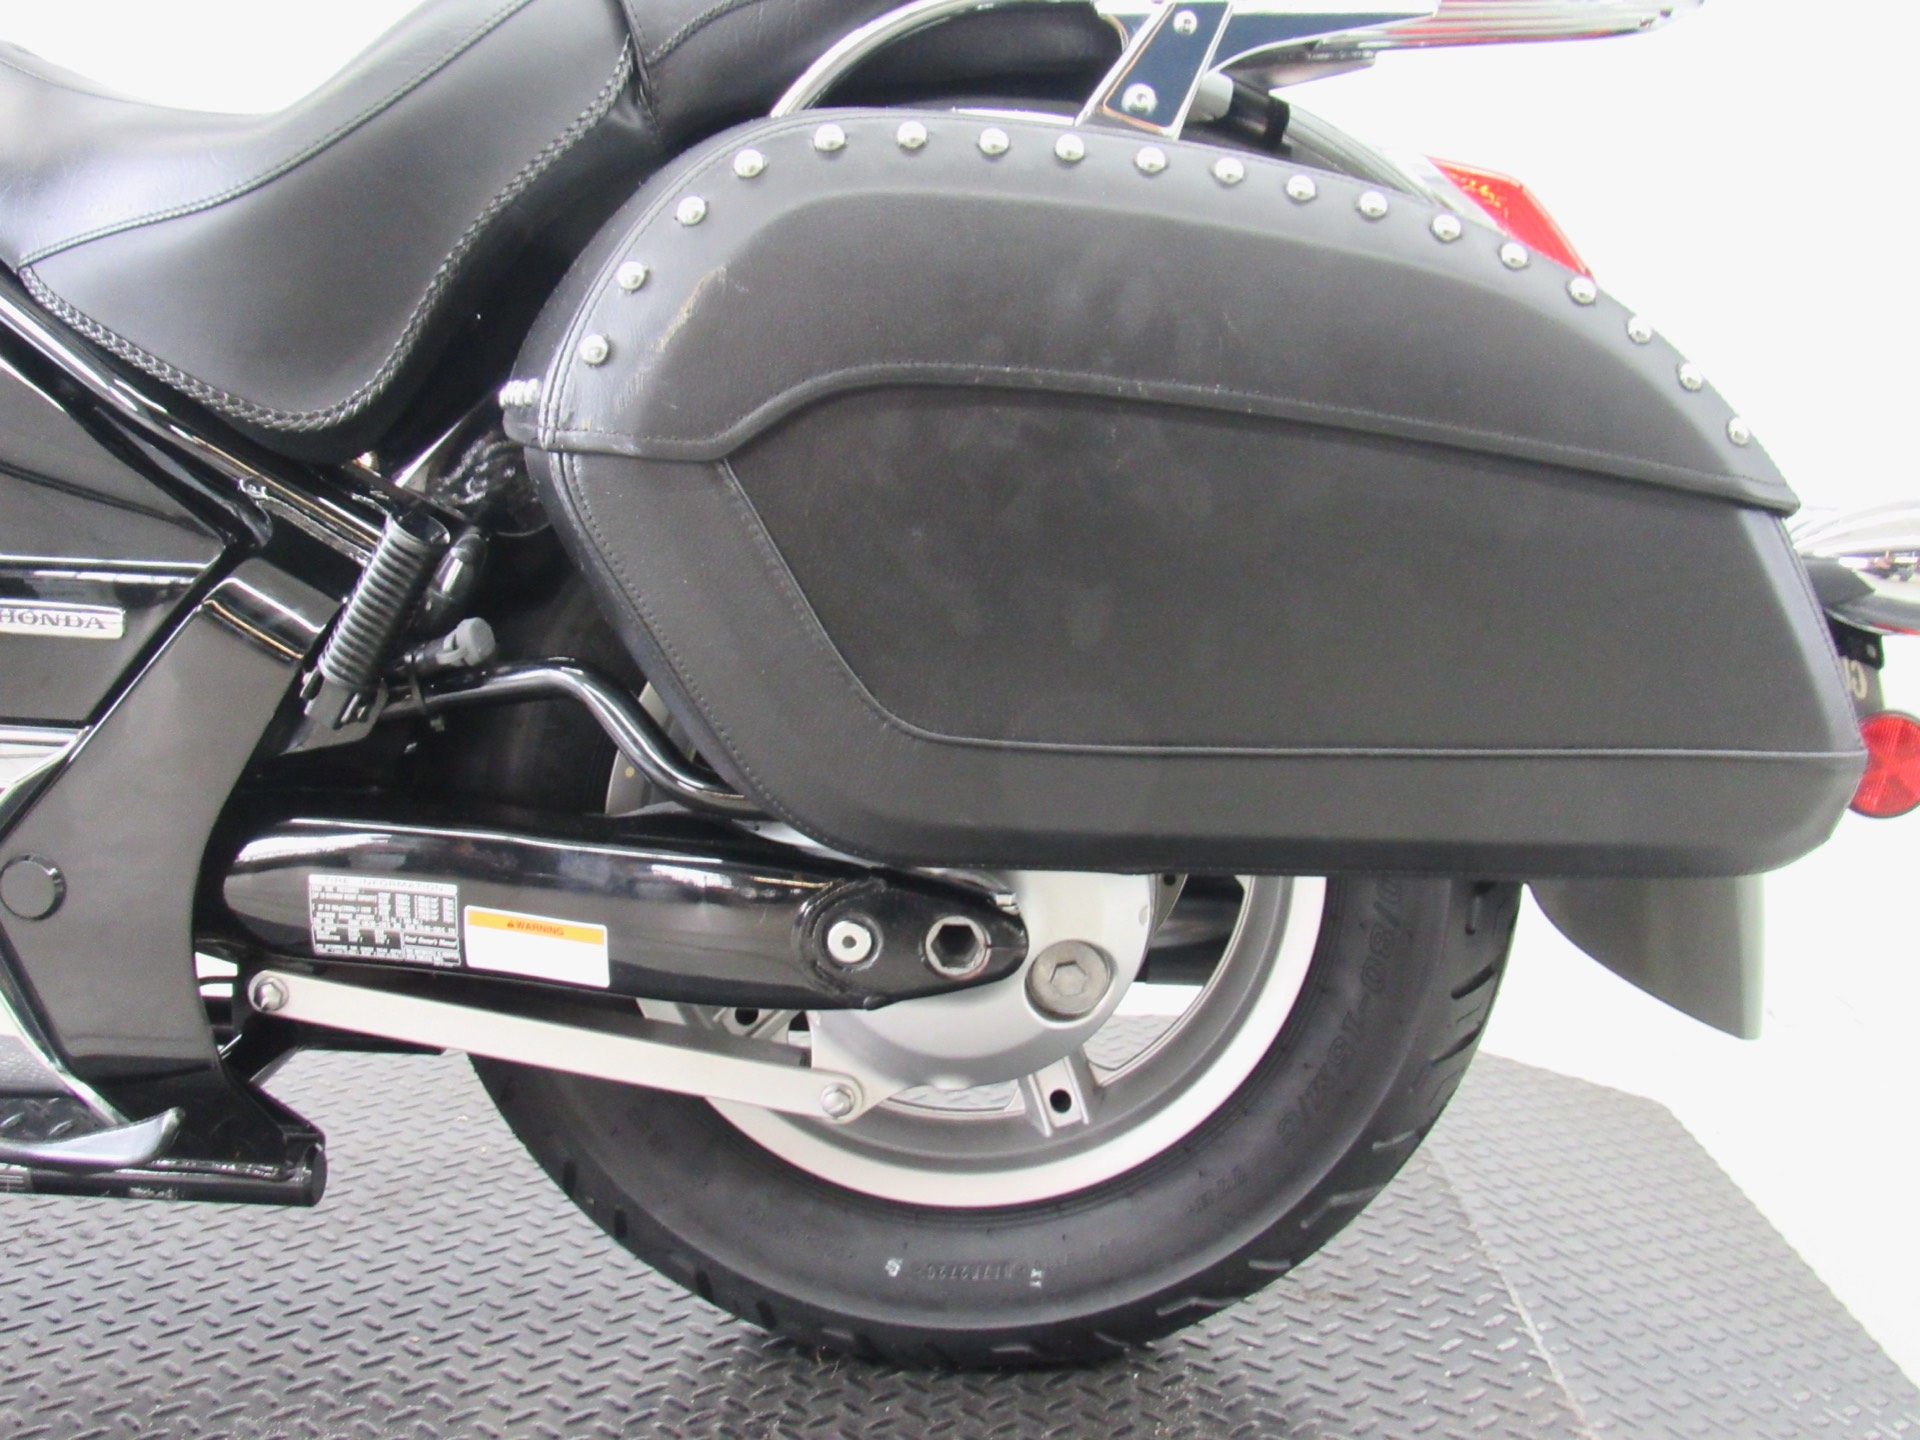 2012 Honda Interstate in Fredericksburg, Virginia - Photo 22